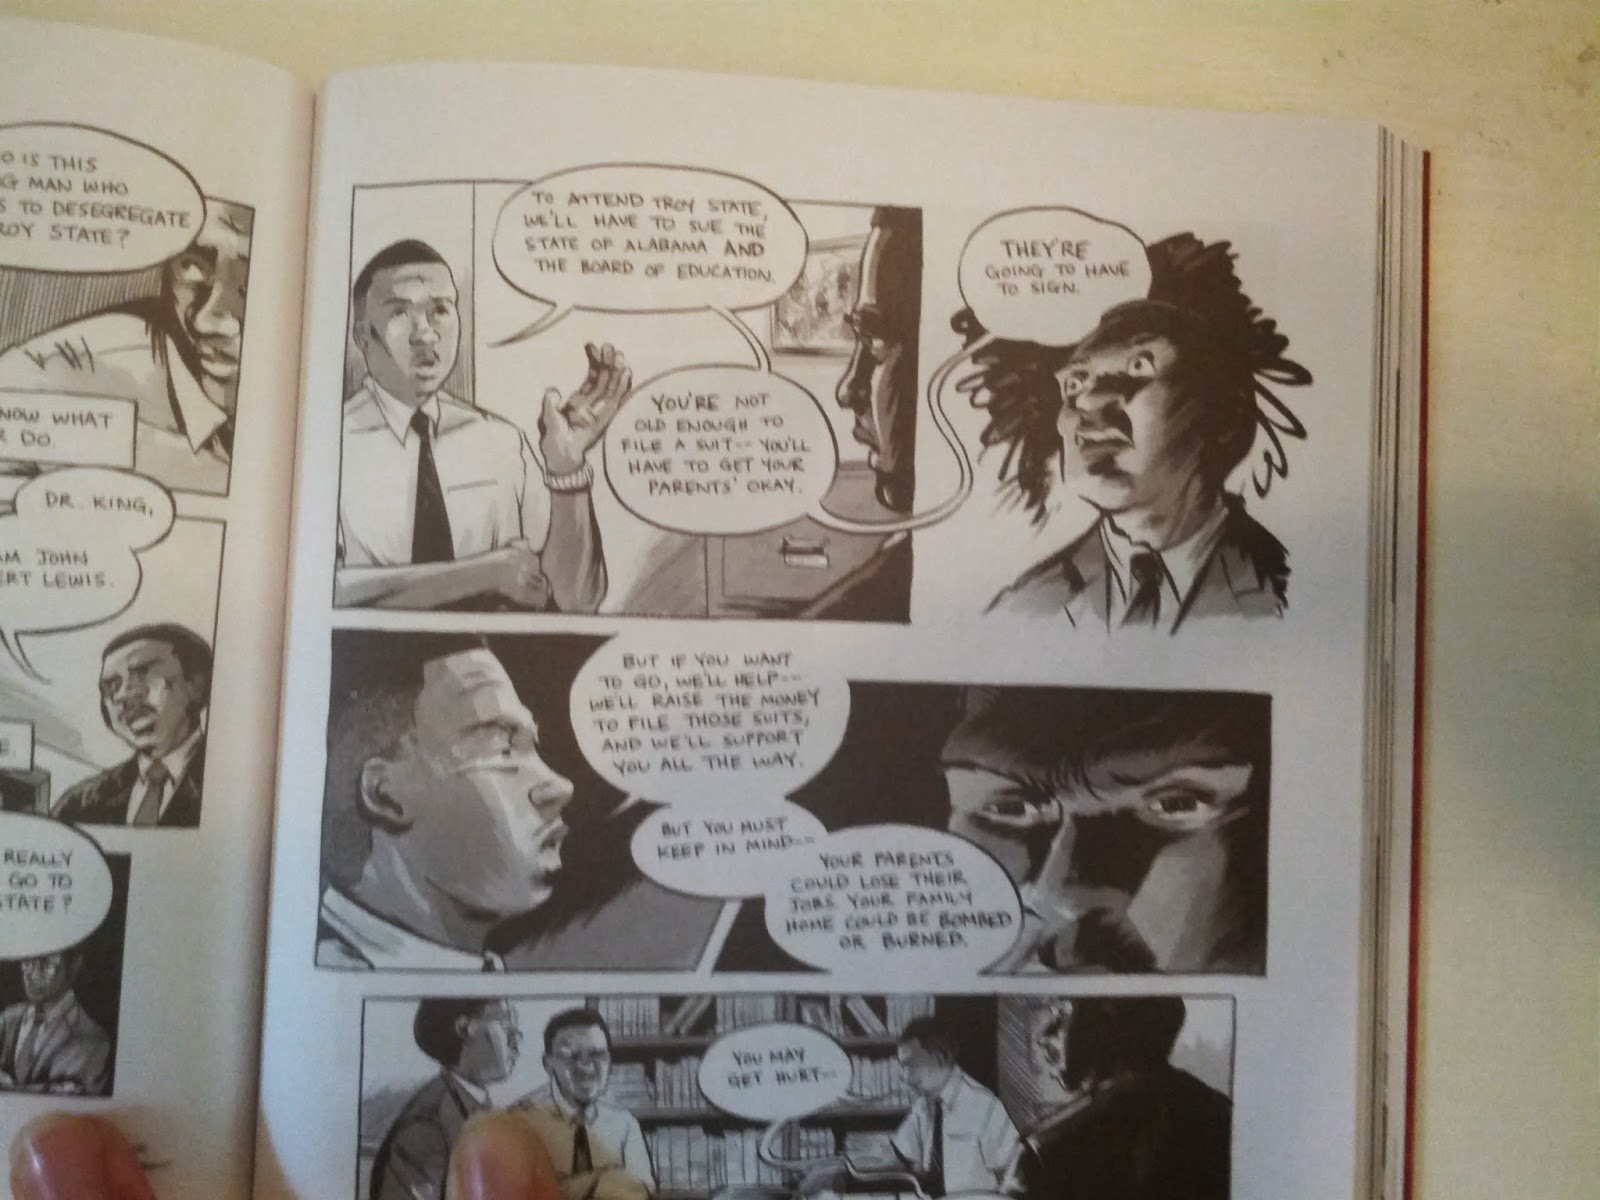 March book one john lewis excerpt